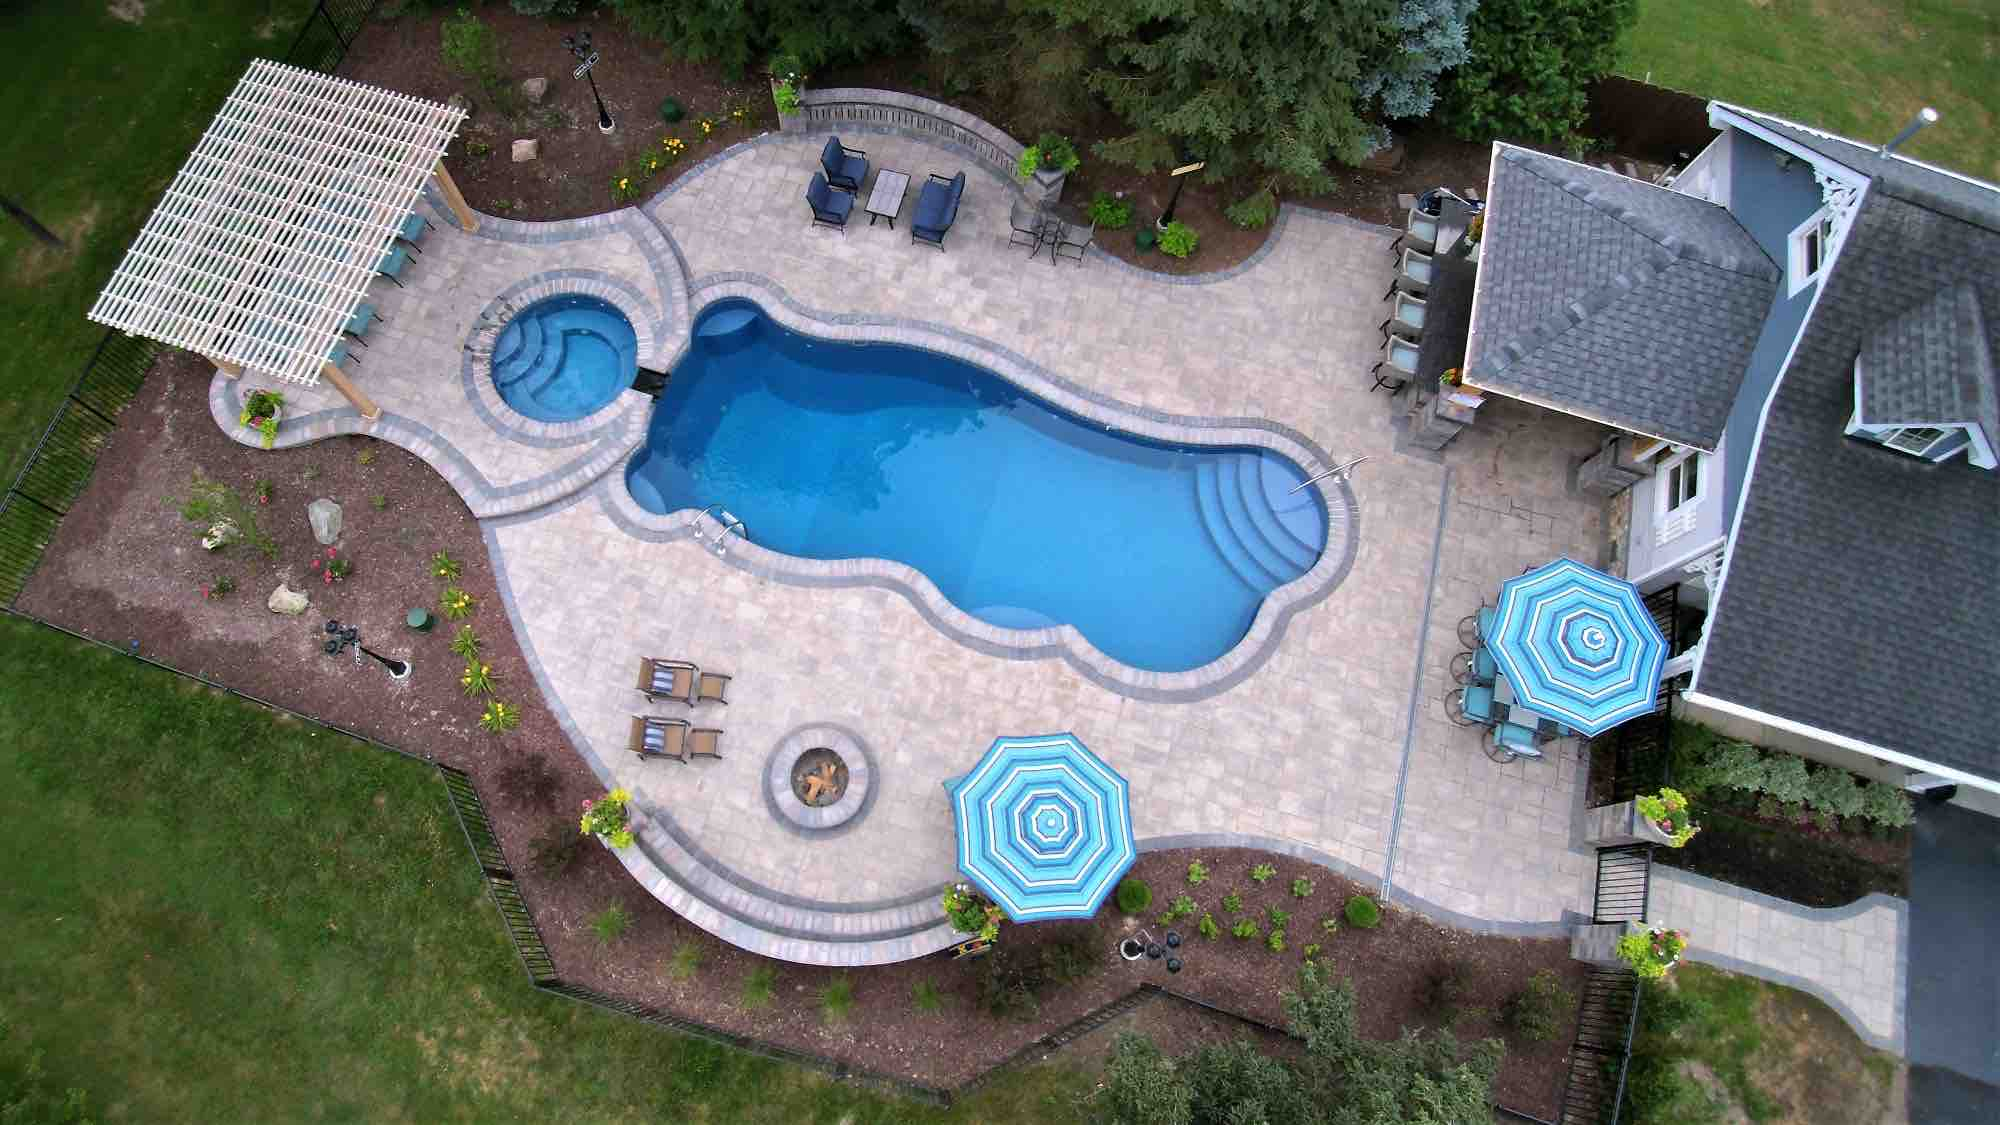 aerial view of pool and hot tub with poolside lounge, deck seating, fire pit, and outdoor kitchen